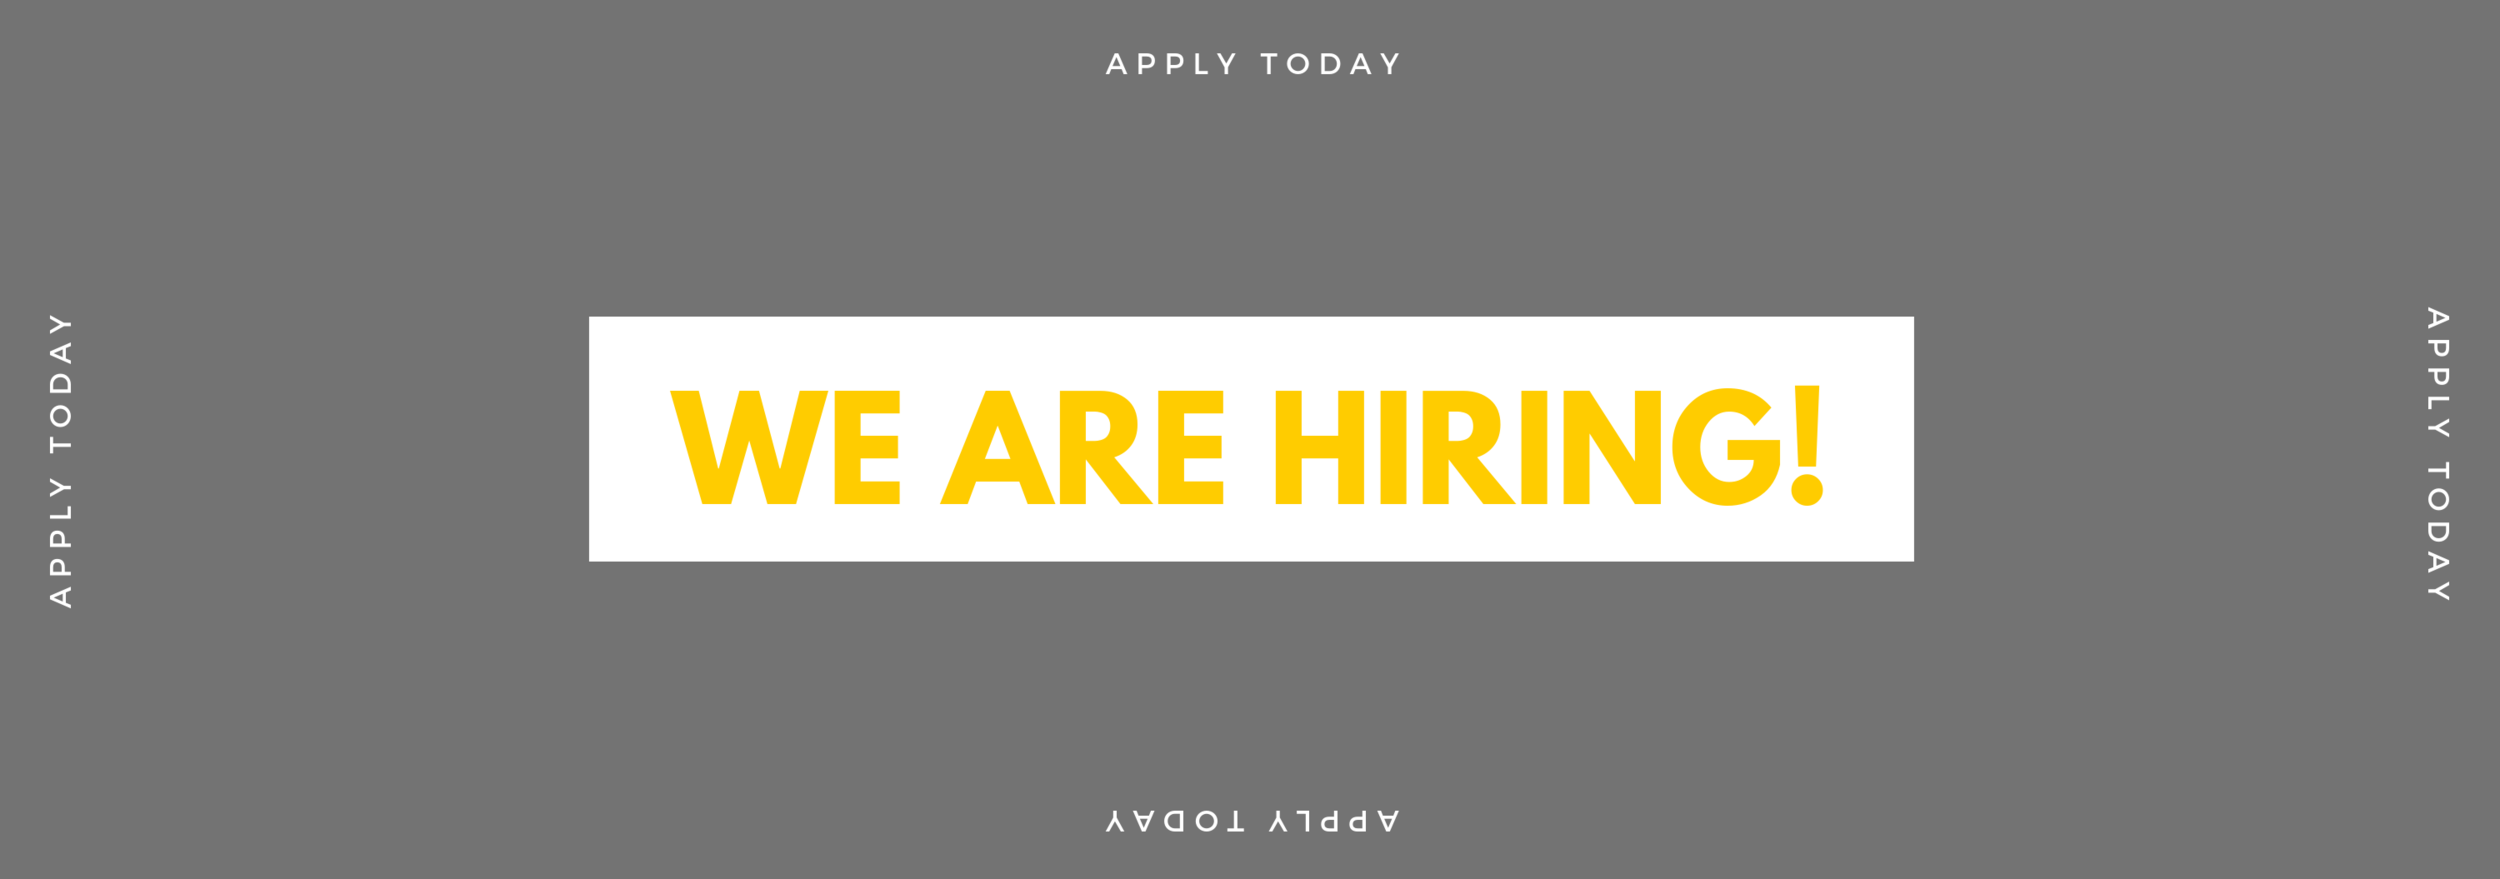 We are hiring!.png